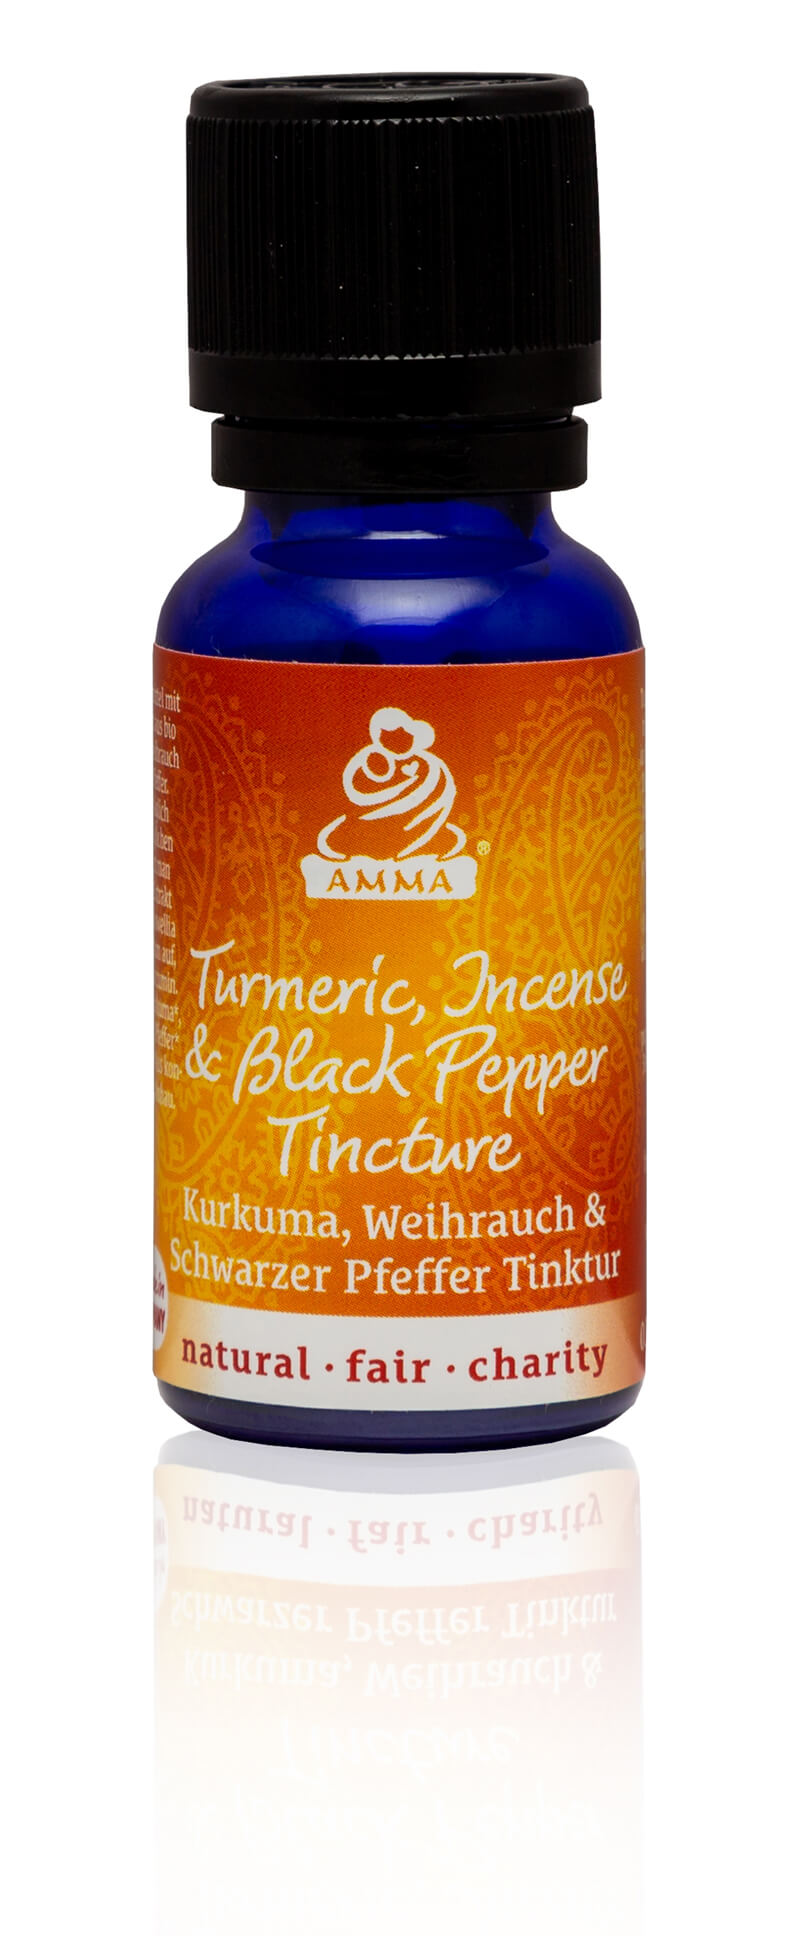 Turmeric, Frankincense and Black Pepper Tincture, organic